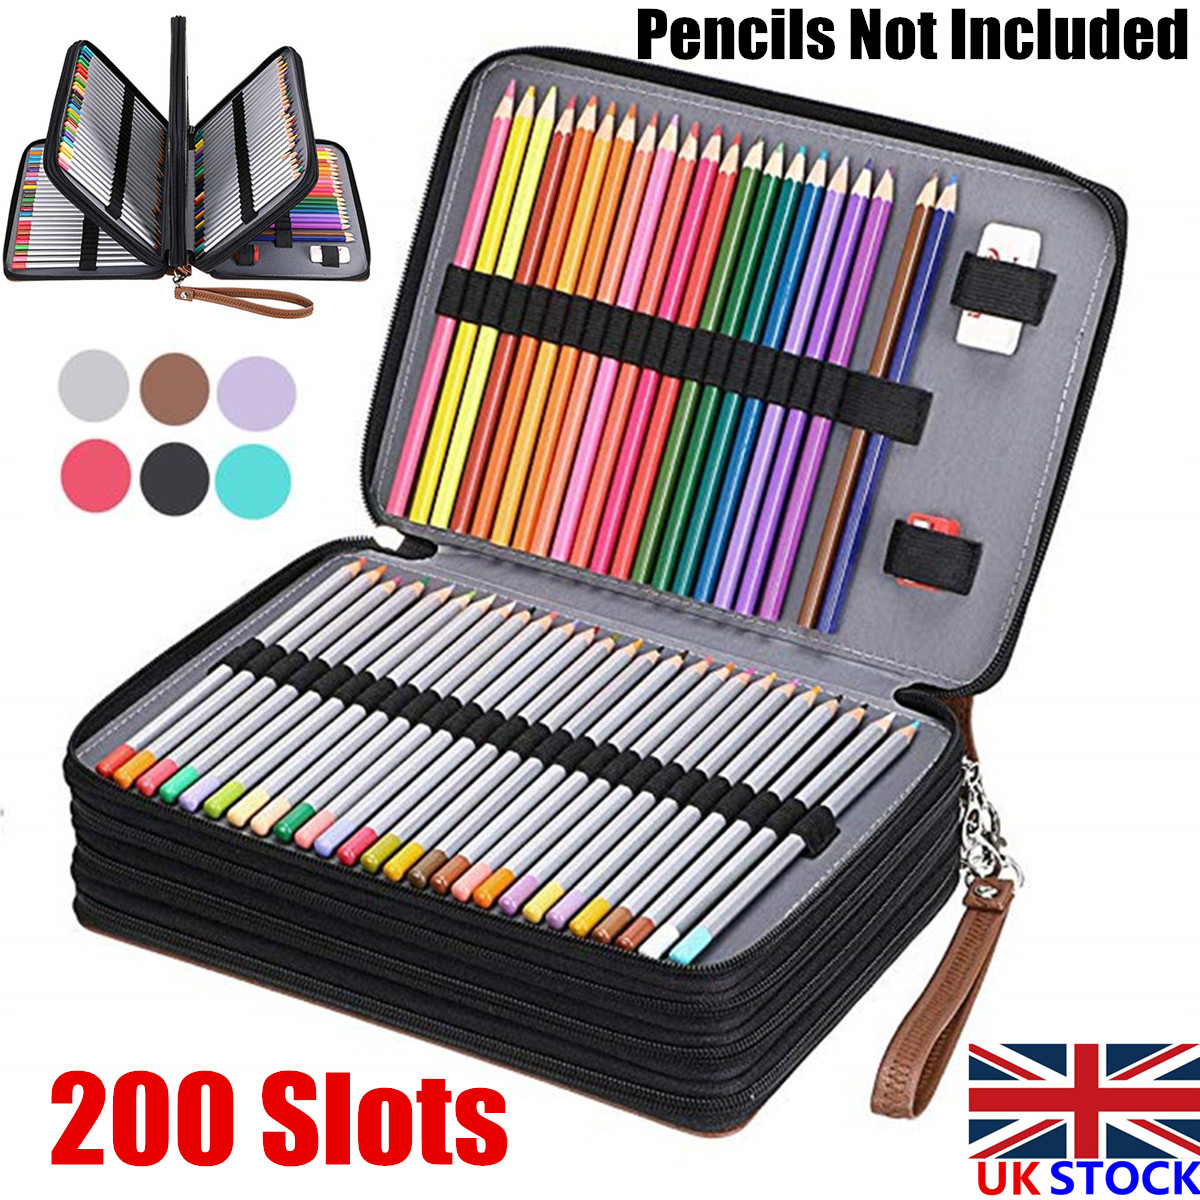 Shulaner 200 Slots Colored Pencil Case Organizer with Zipper PU Leather Large Capacity Pen Holder Bag Brown